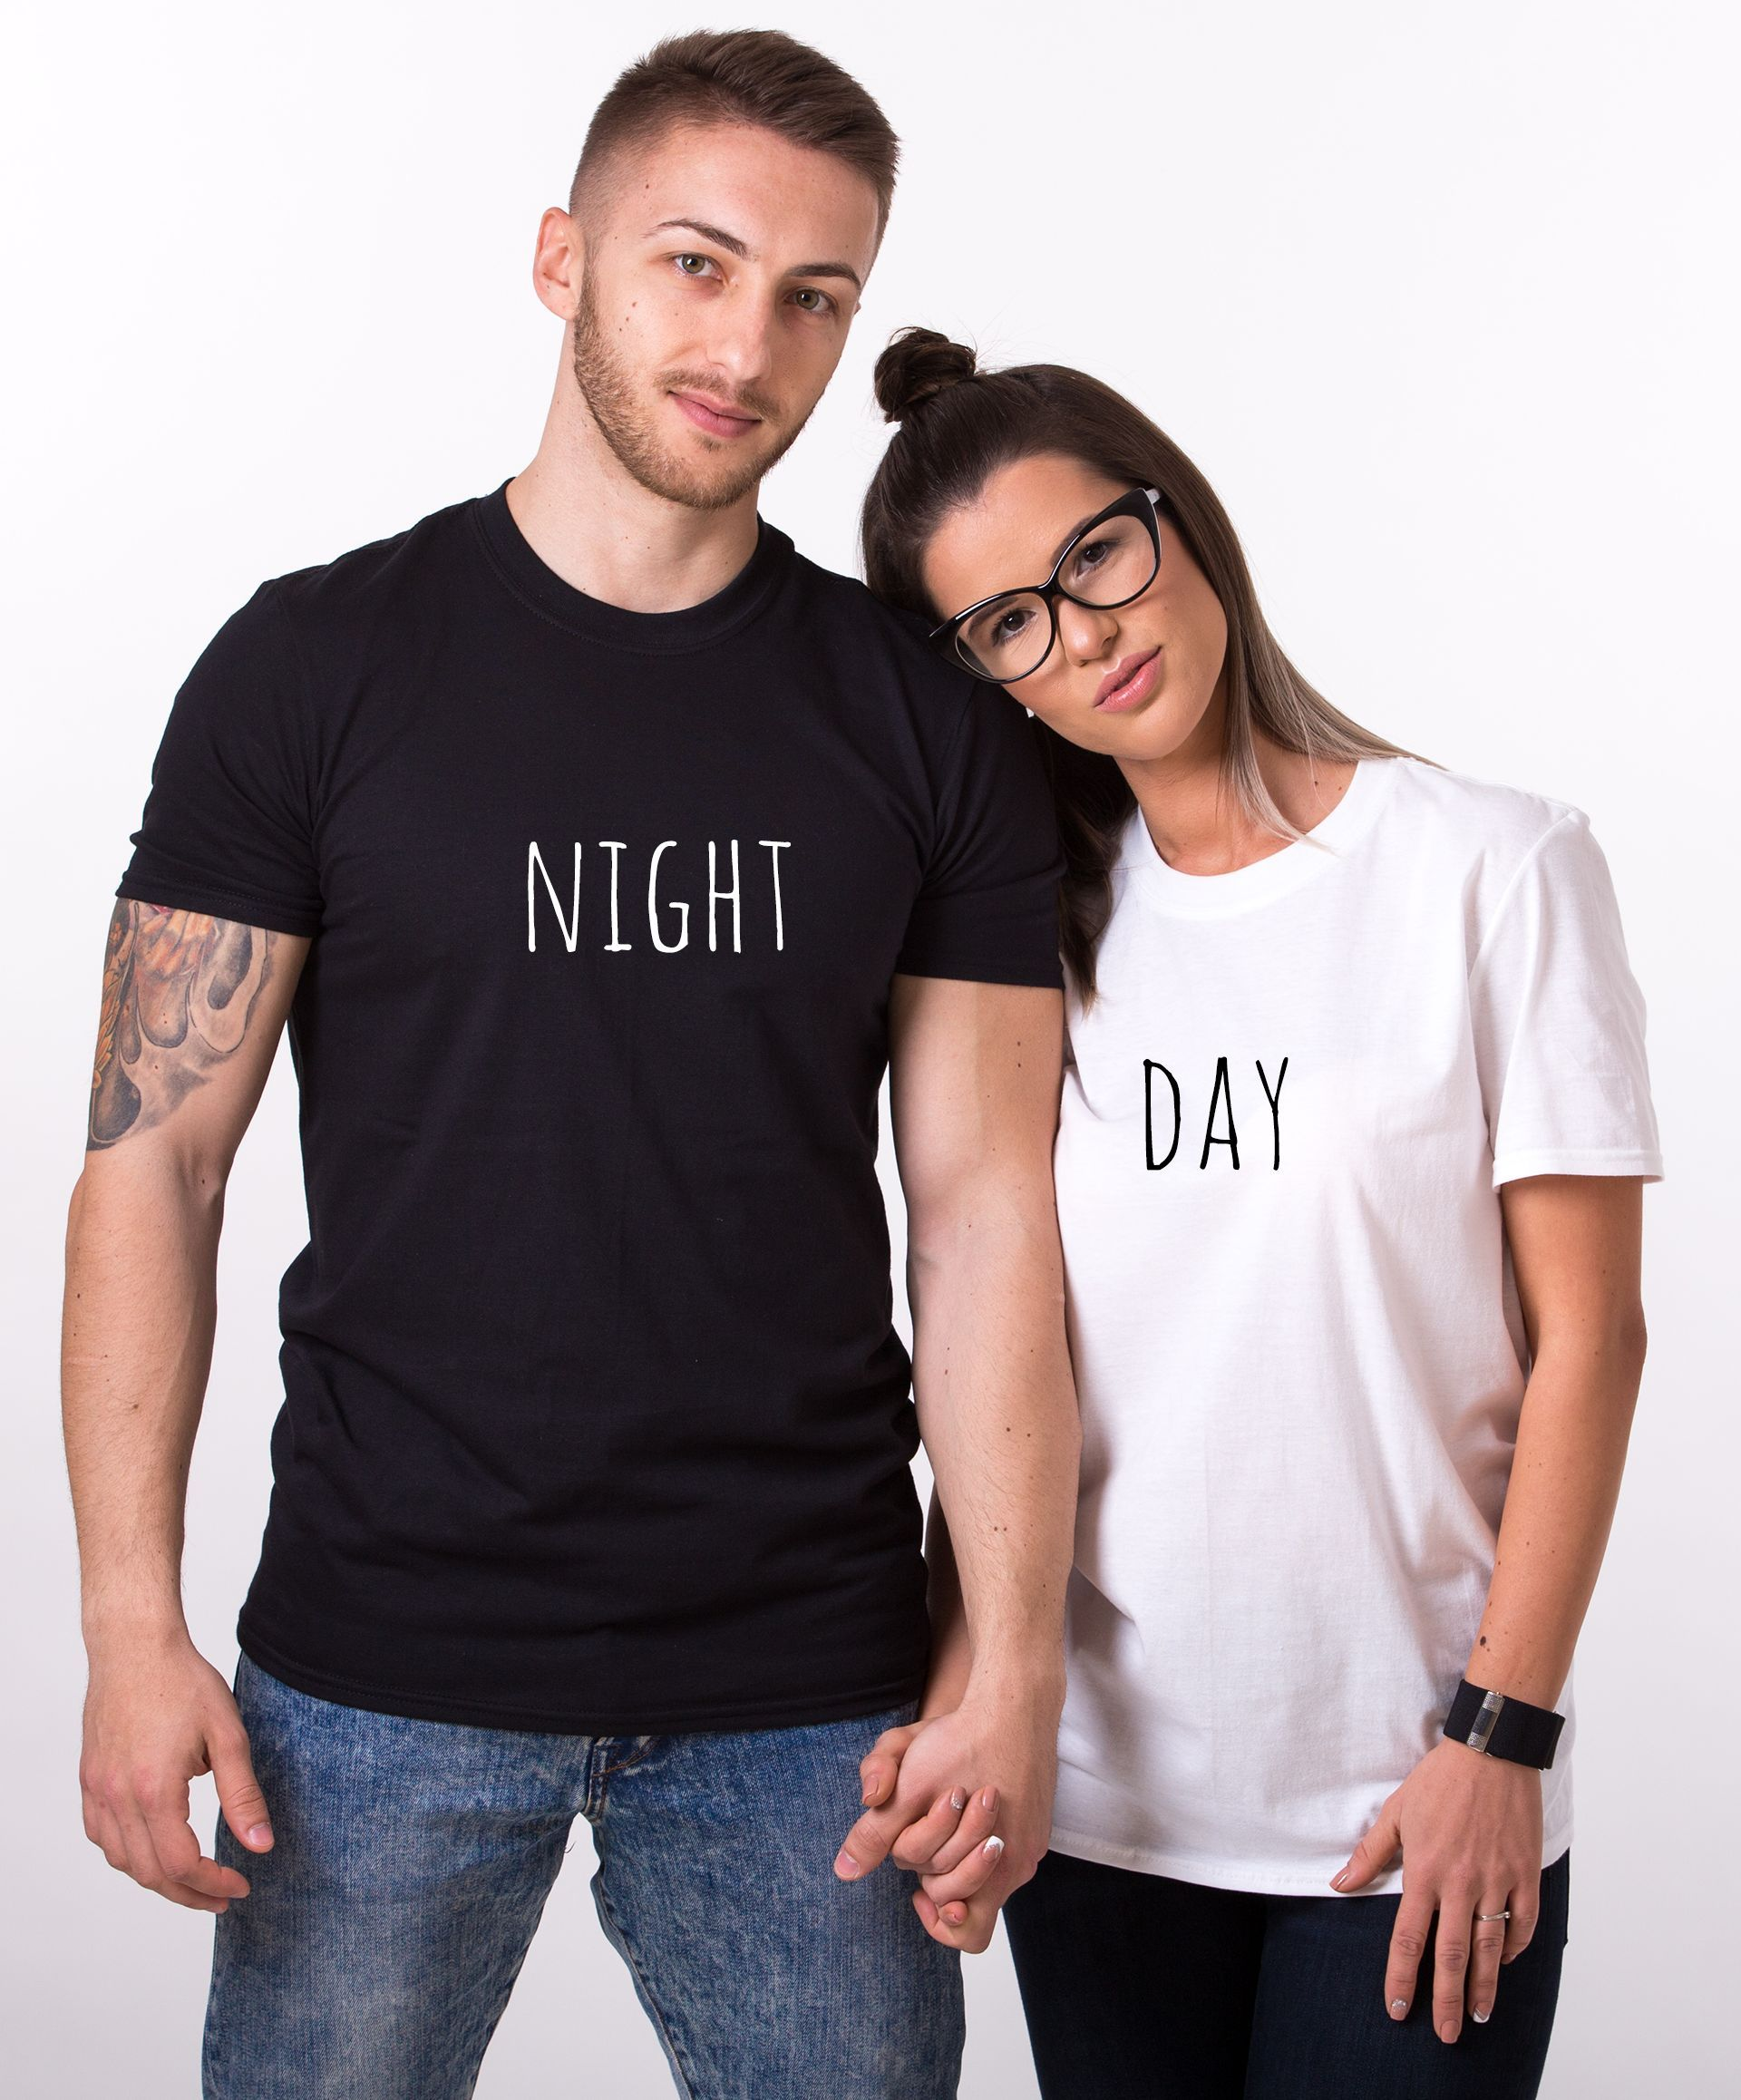 c1873cd77 Day Night Shirts, Matching Couples Shirts, Unisex. Be the perfect couple  with these matching couples shirts! Get yours now!